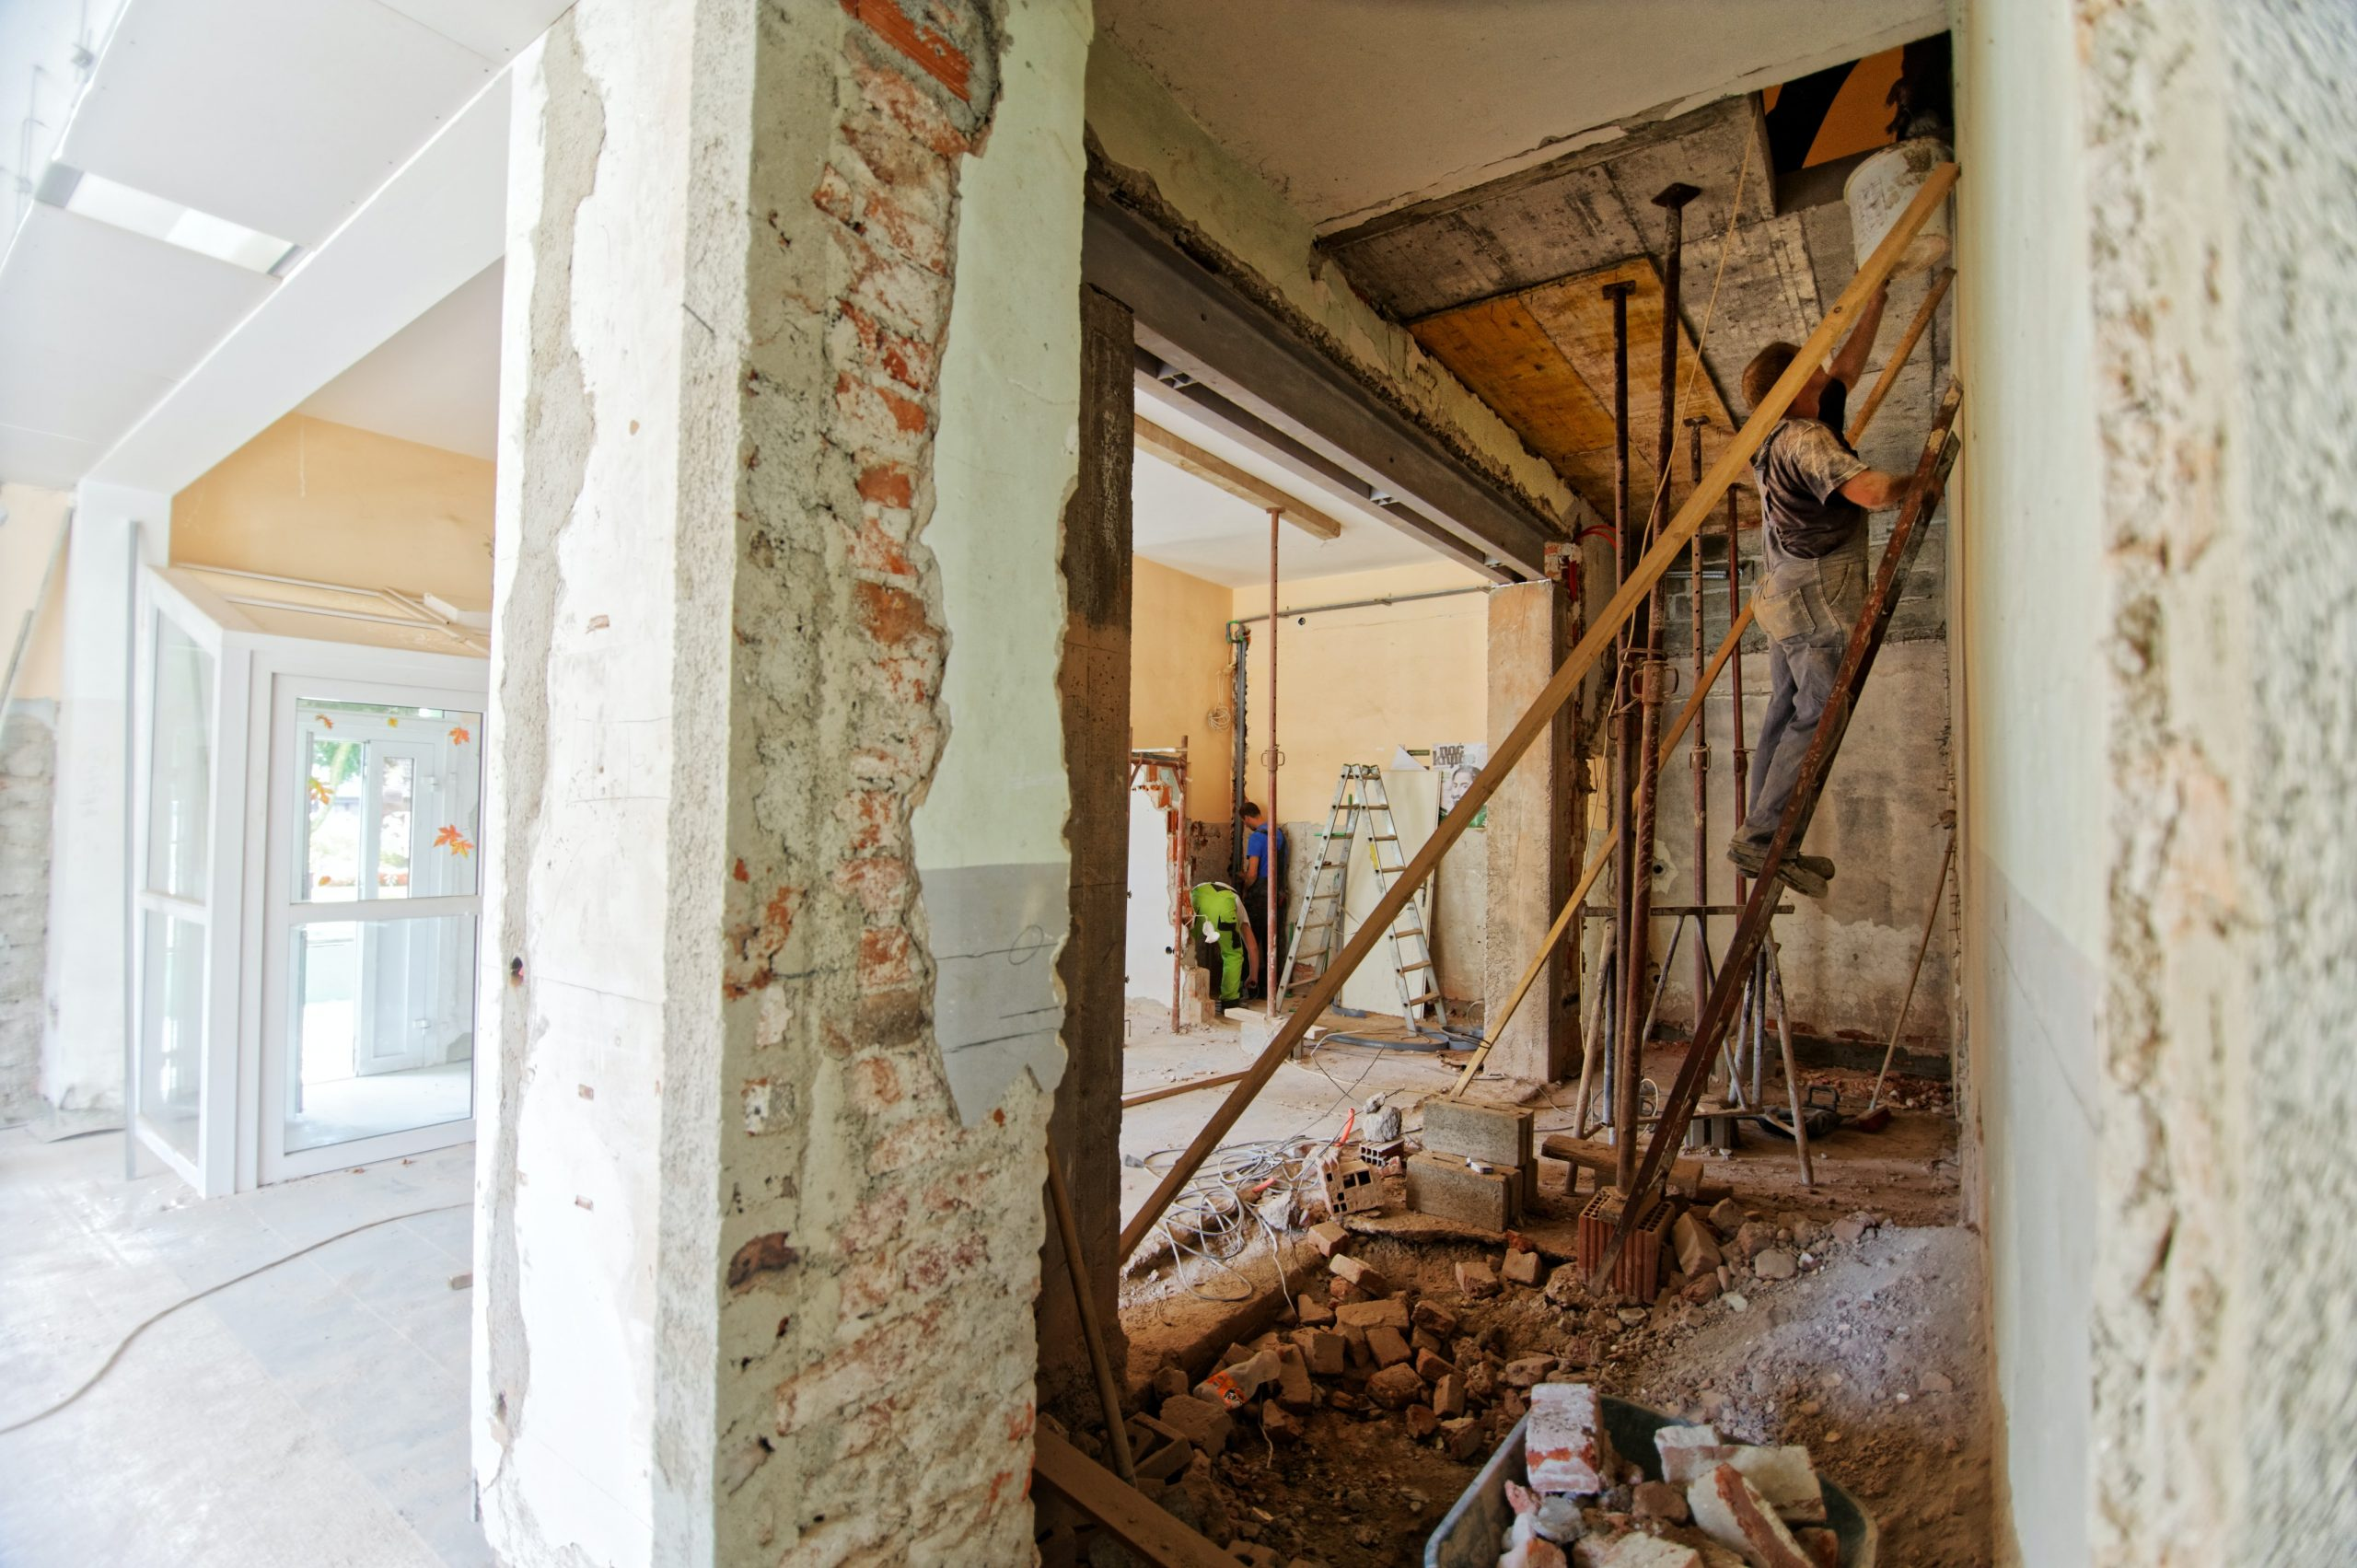 What You Need To Know About Asbestos In The Home